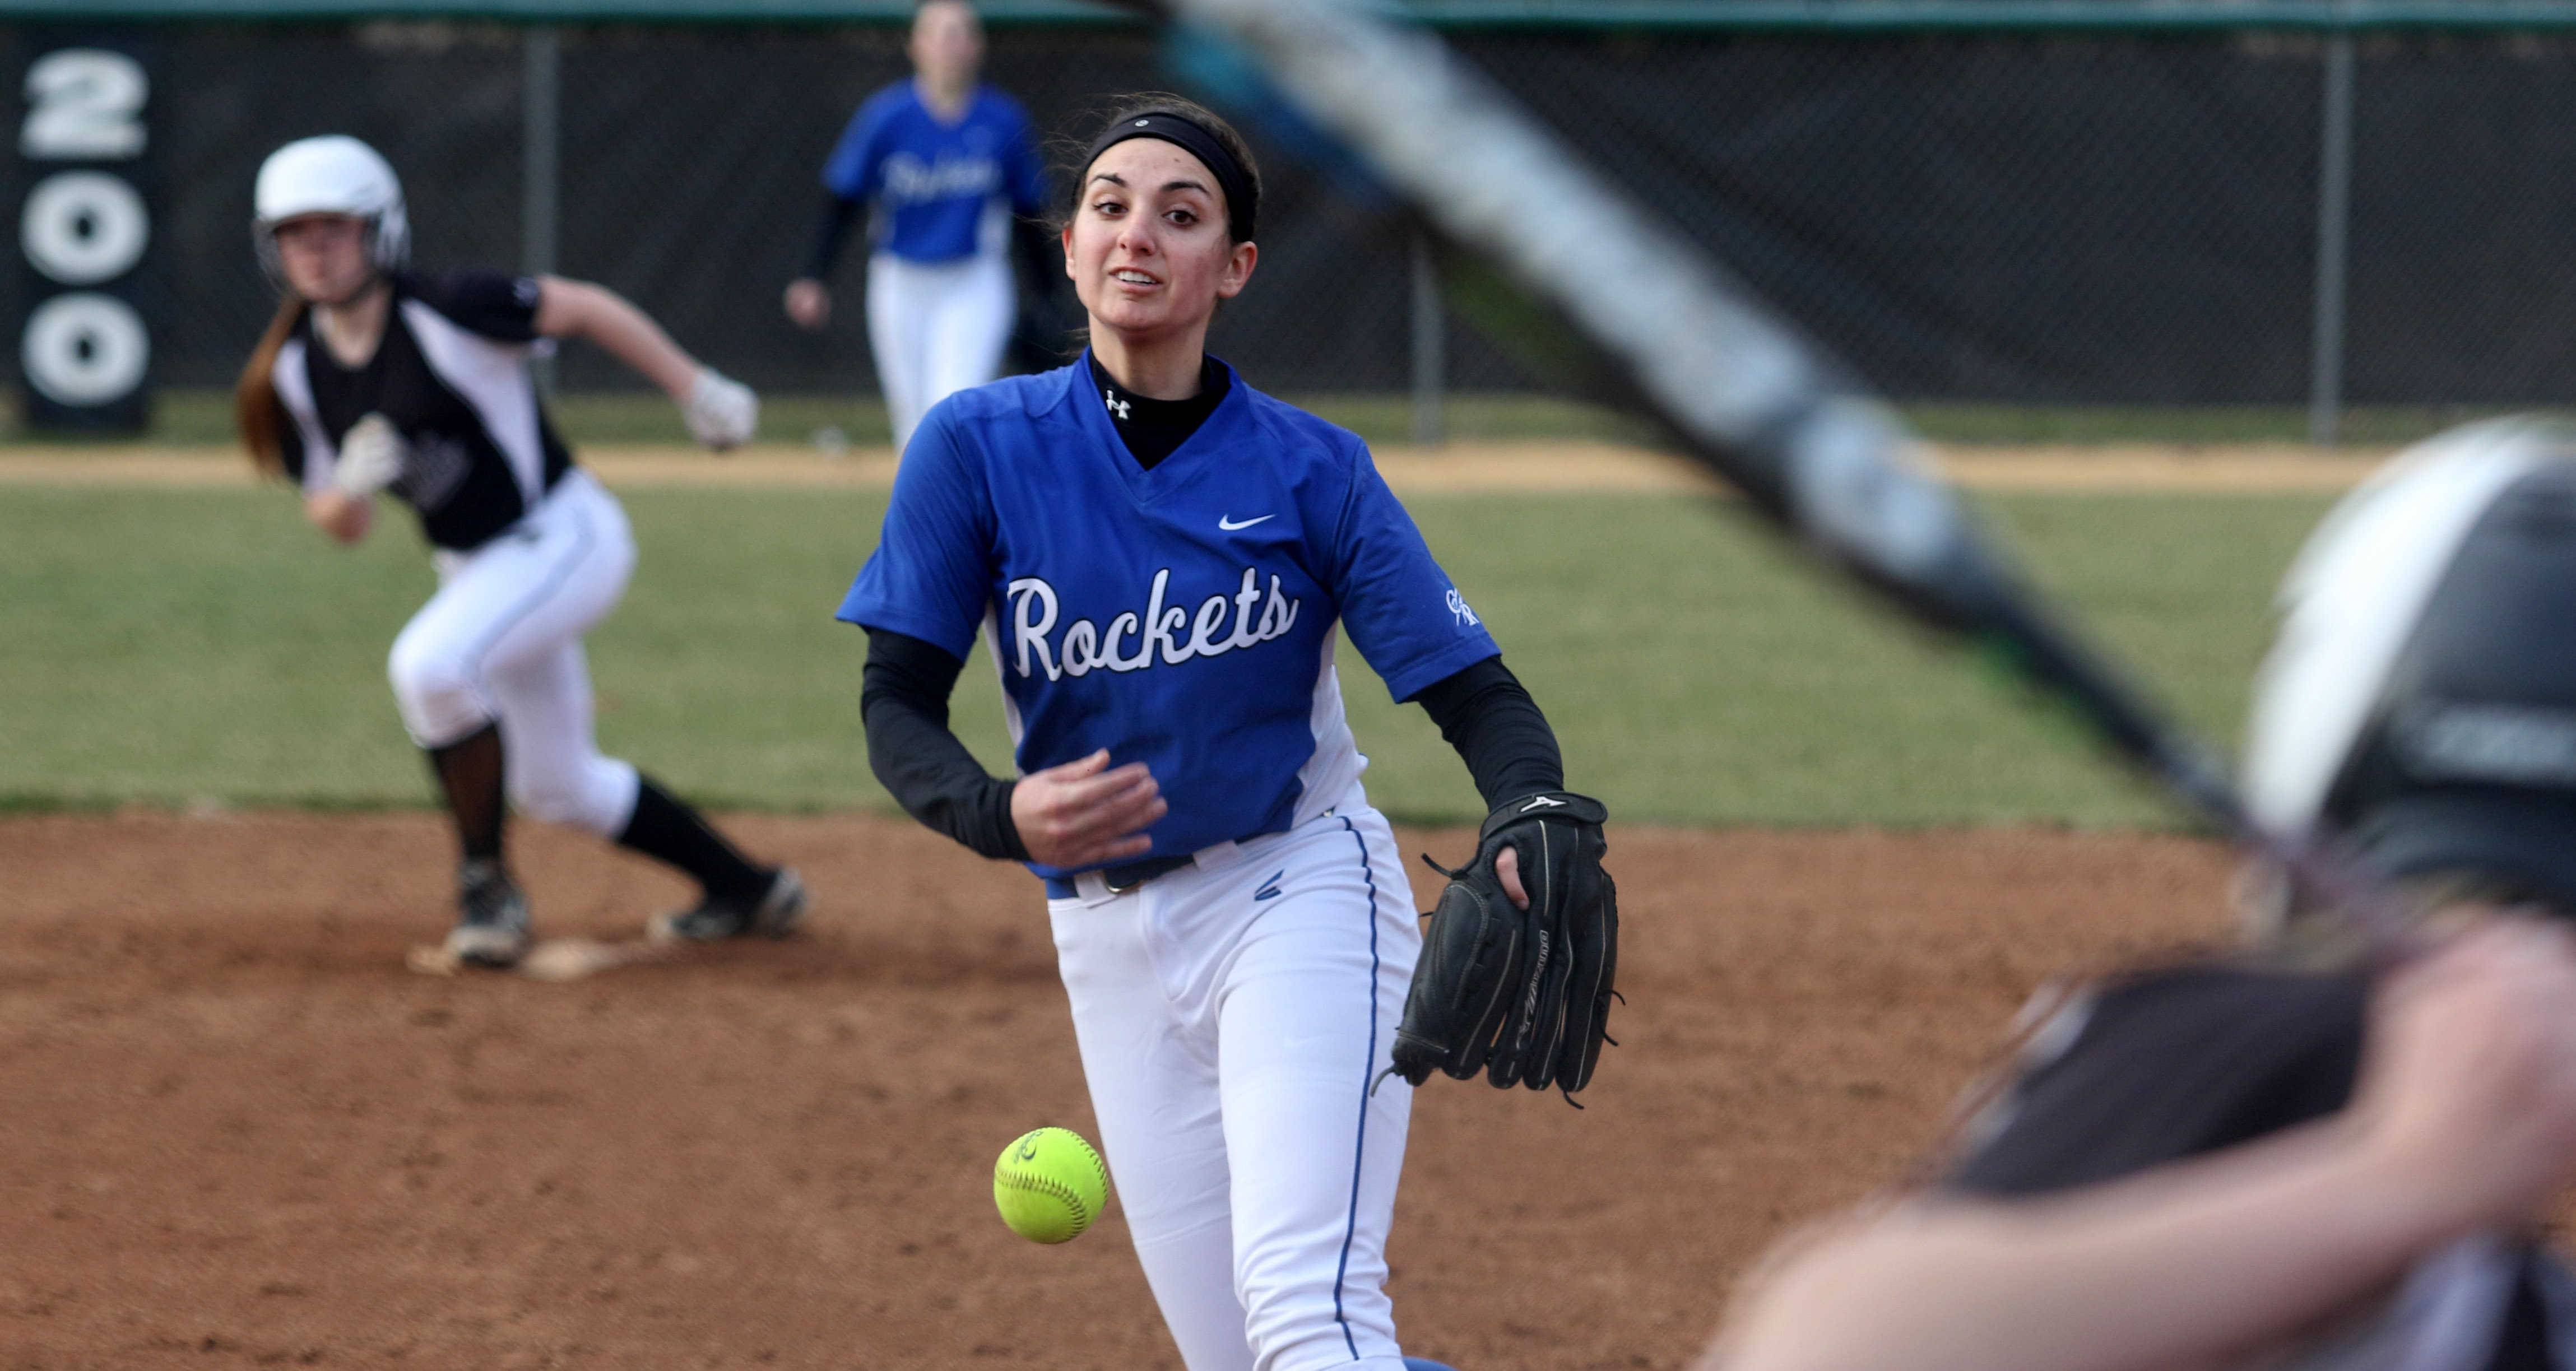 Burlington Central pitcher Julia Barnes makes an offering during varsity softball action at Kaneland Monday night.